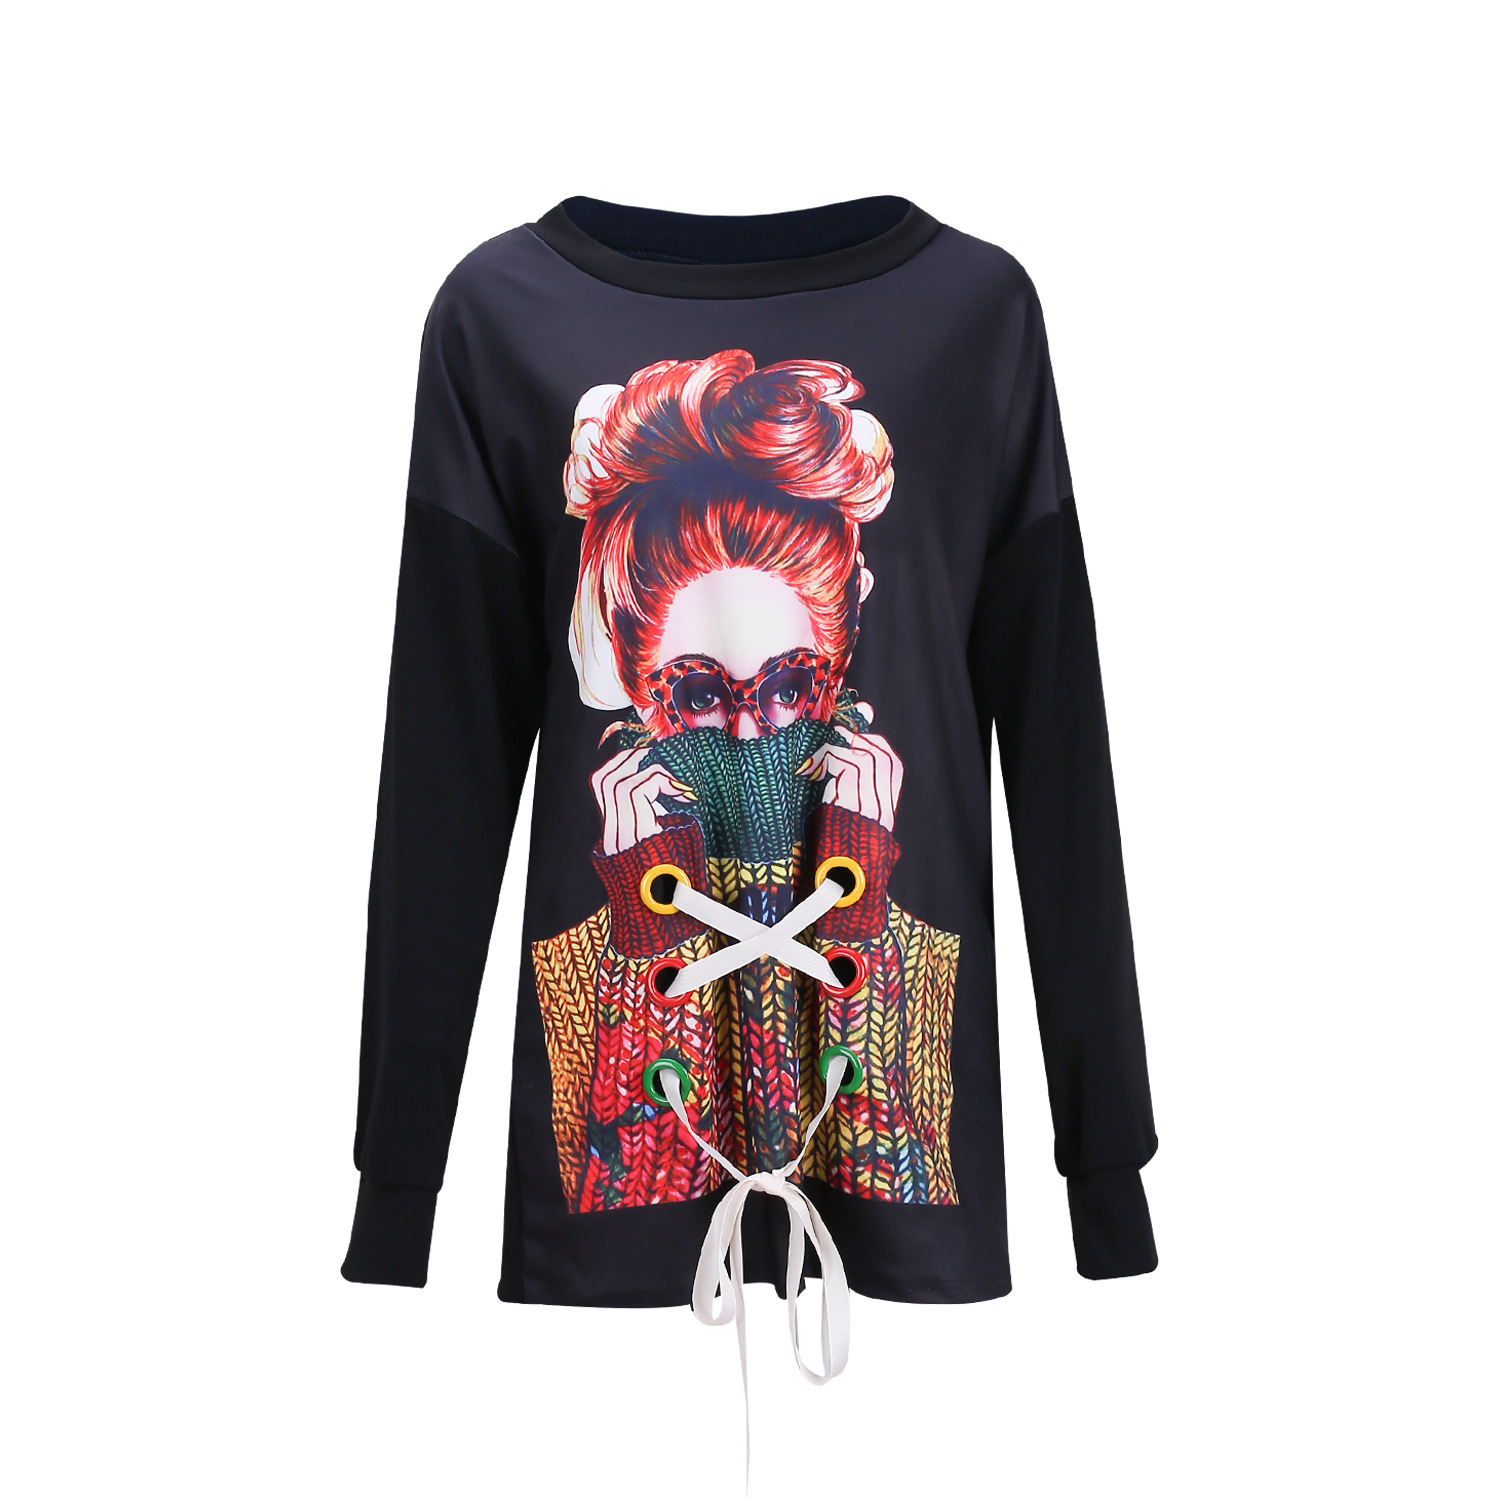 young women plus size casual round neck long sleeve graphic print sweatshirt dress